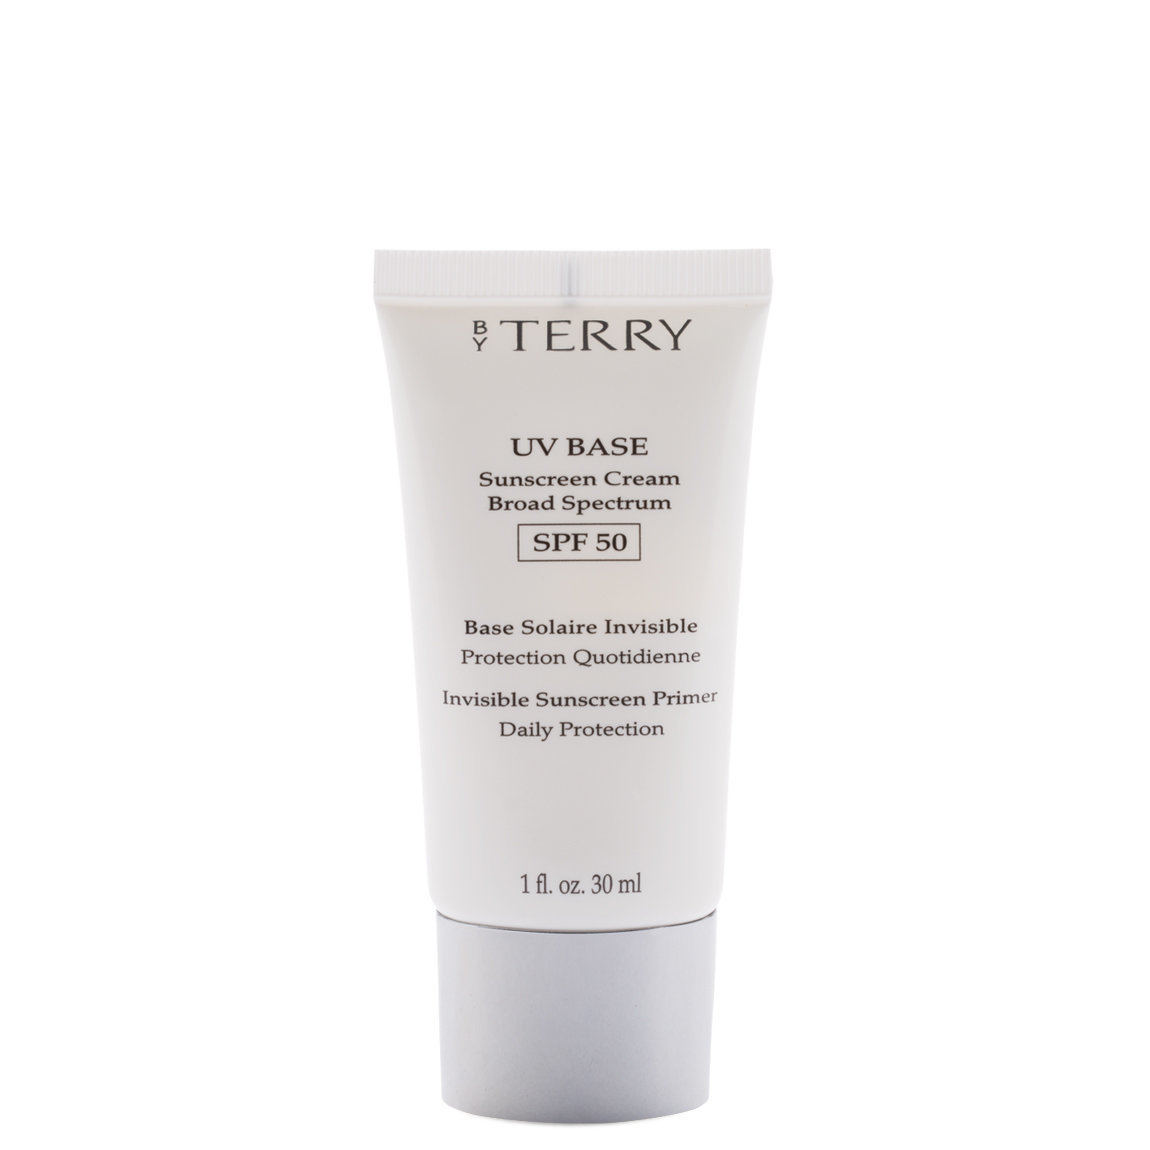 BY TERRY UV Base SPF 50 alternative view 1 - product swatch.